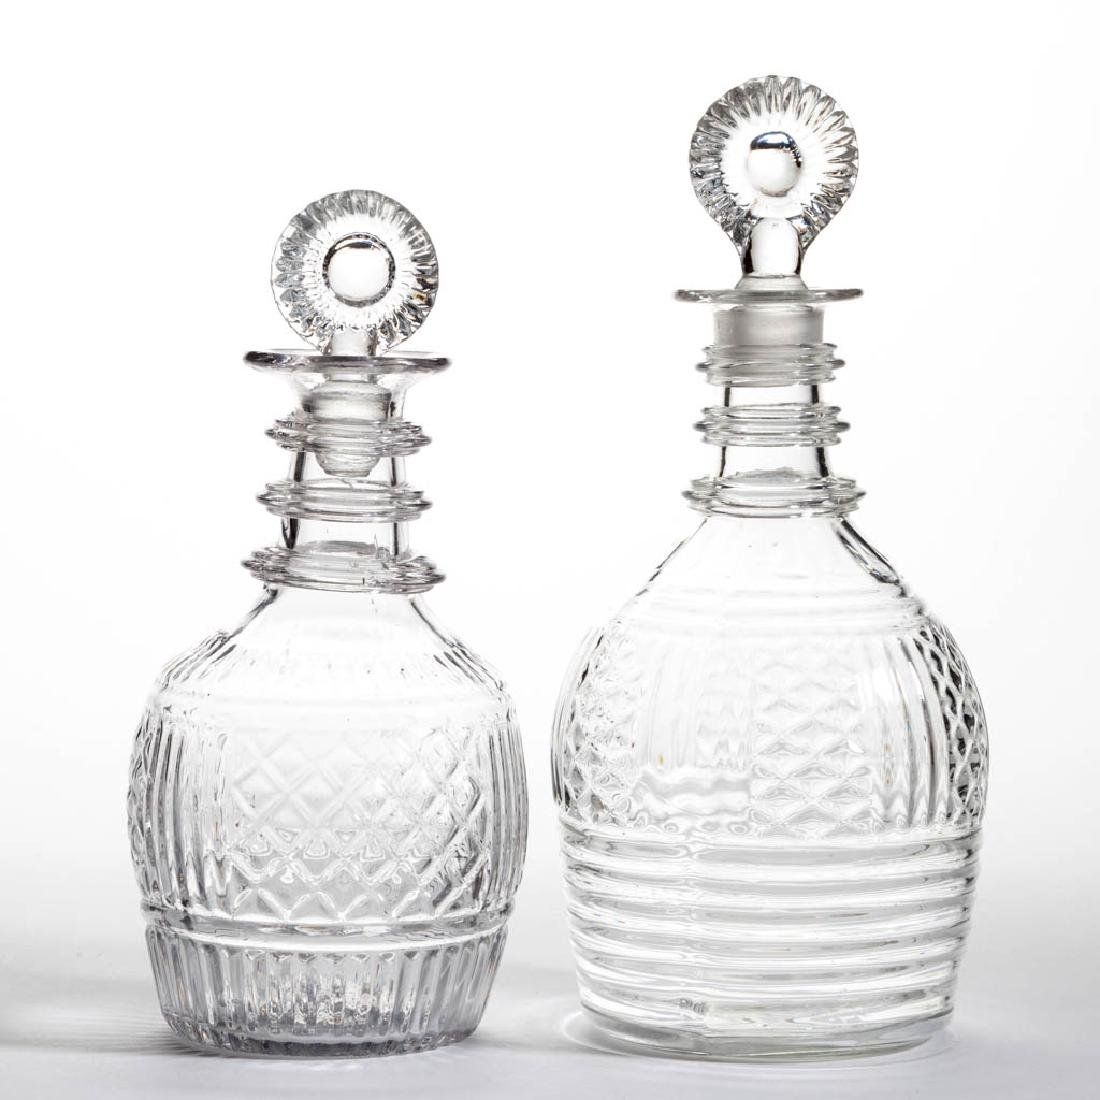 BLOWN-MOLDED THREE-MOLD DECANTERS, LOT OF TWO